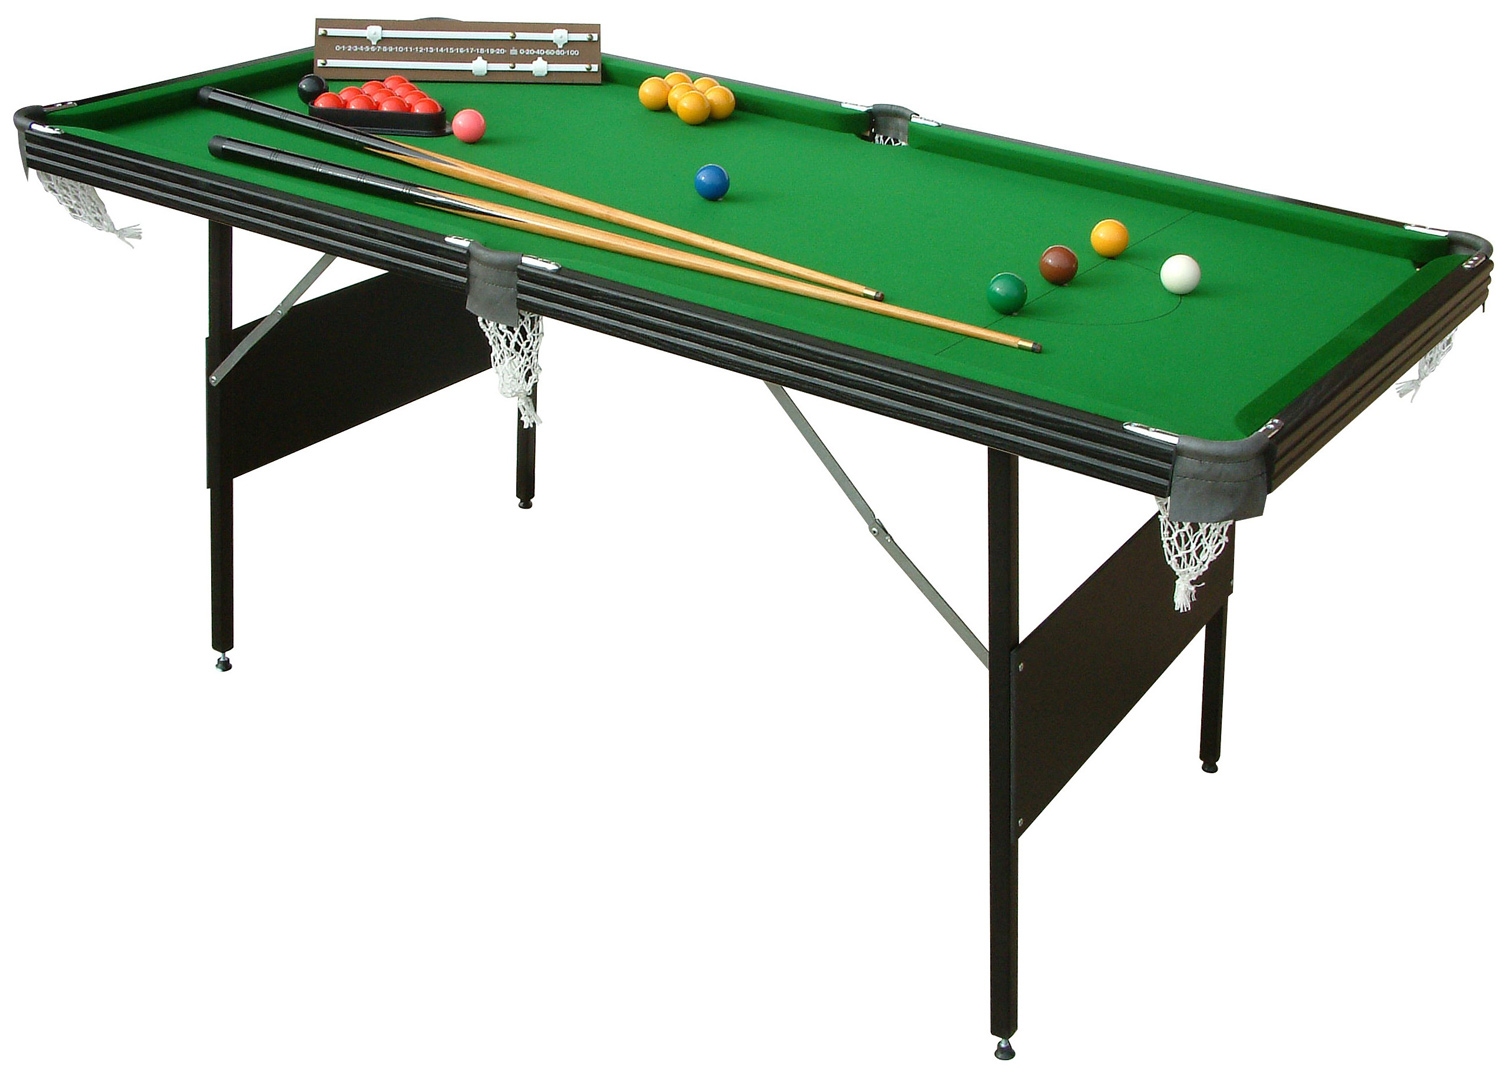 Dining Room Pool Table Combo Crucible 6 Foot 2 In 1 Folding Snooker Amp Pool Table